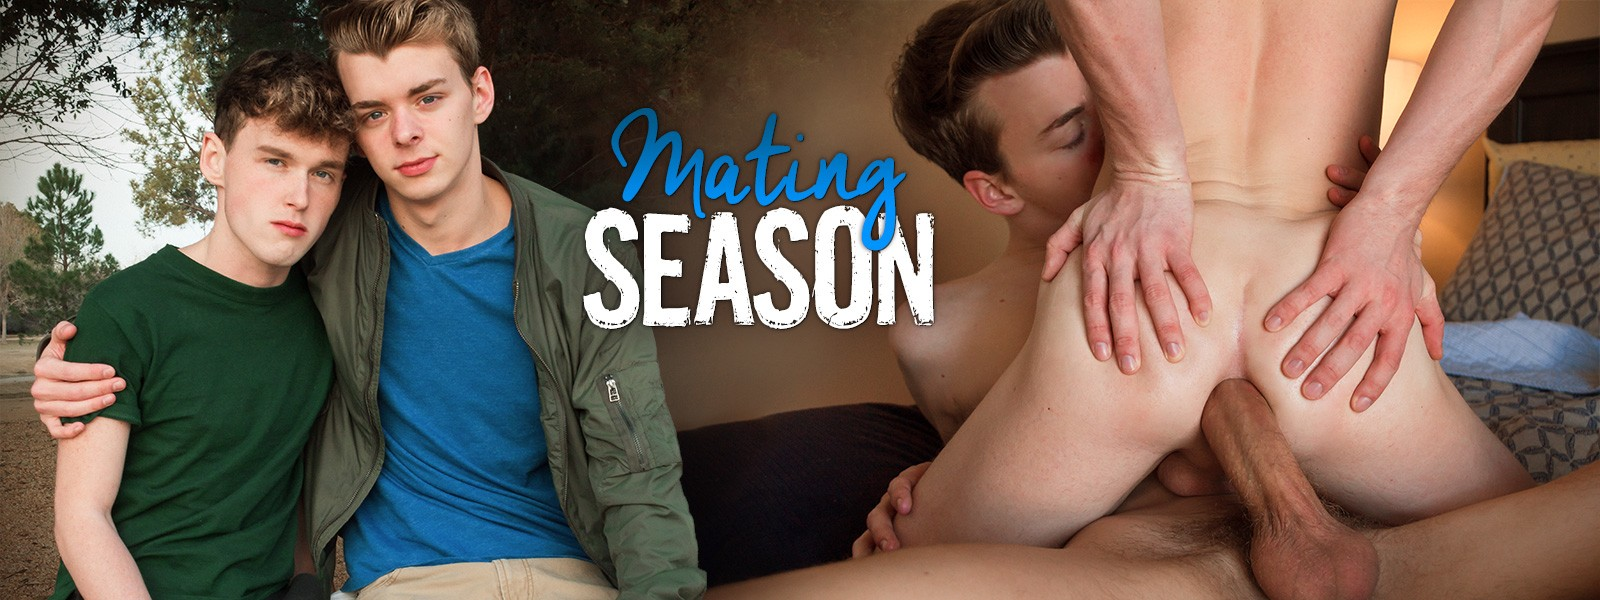 Young Twink Teens Teenboy Teenage Rimming Kissing Hunter Graham Gay Ethan Helms Brunette Boys Blowjob Big Dick Bareback Anal Sex  8Teenboy: Mating Season (Hunter Graham, Ethan Helms)